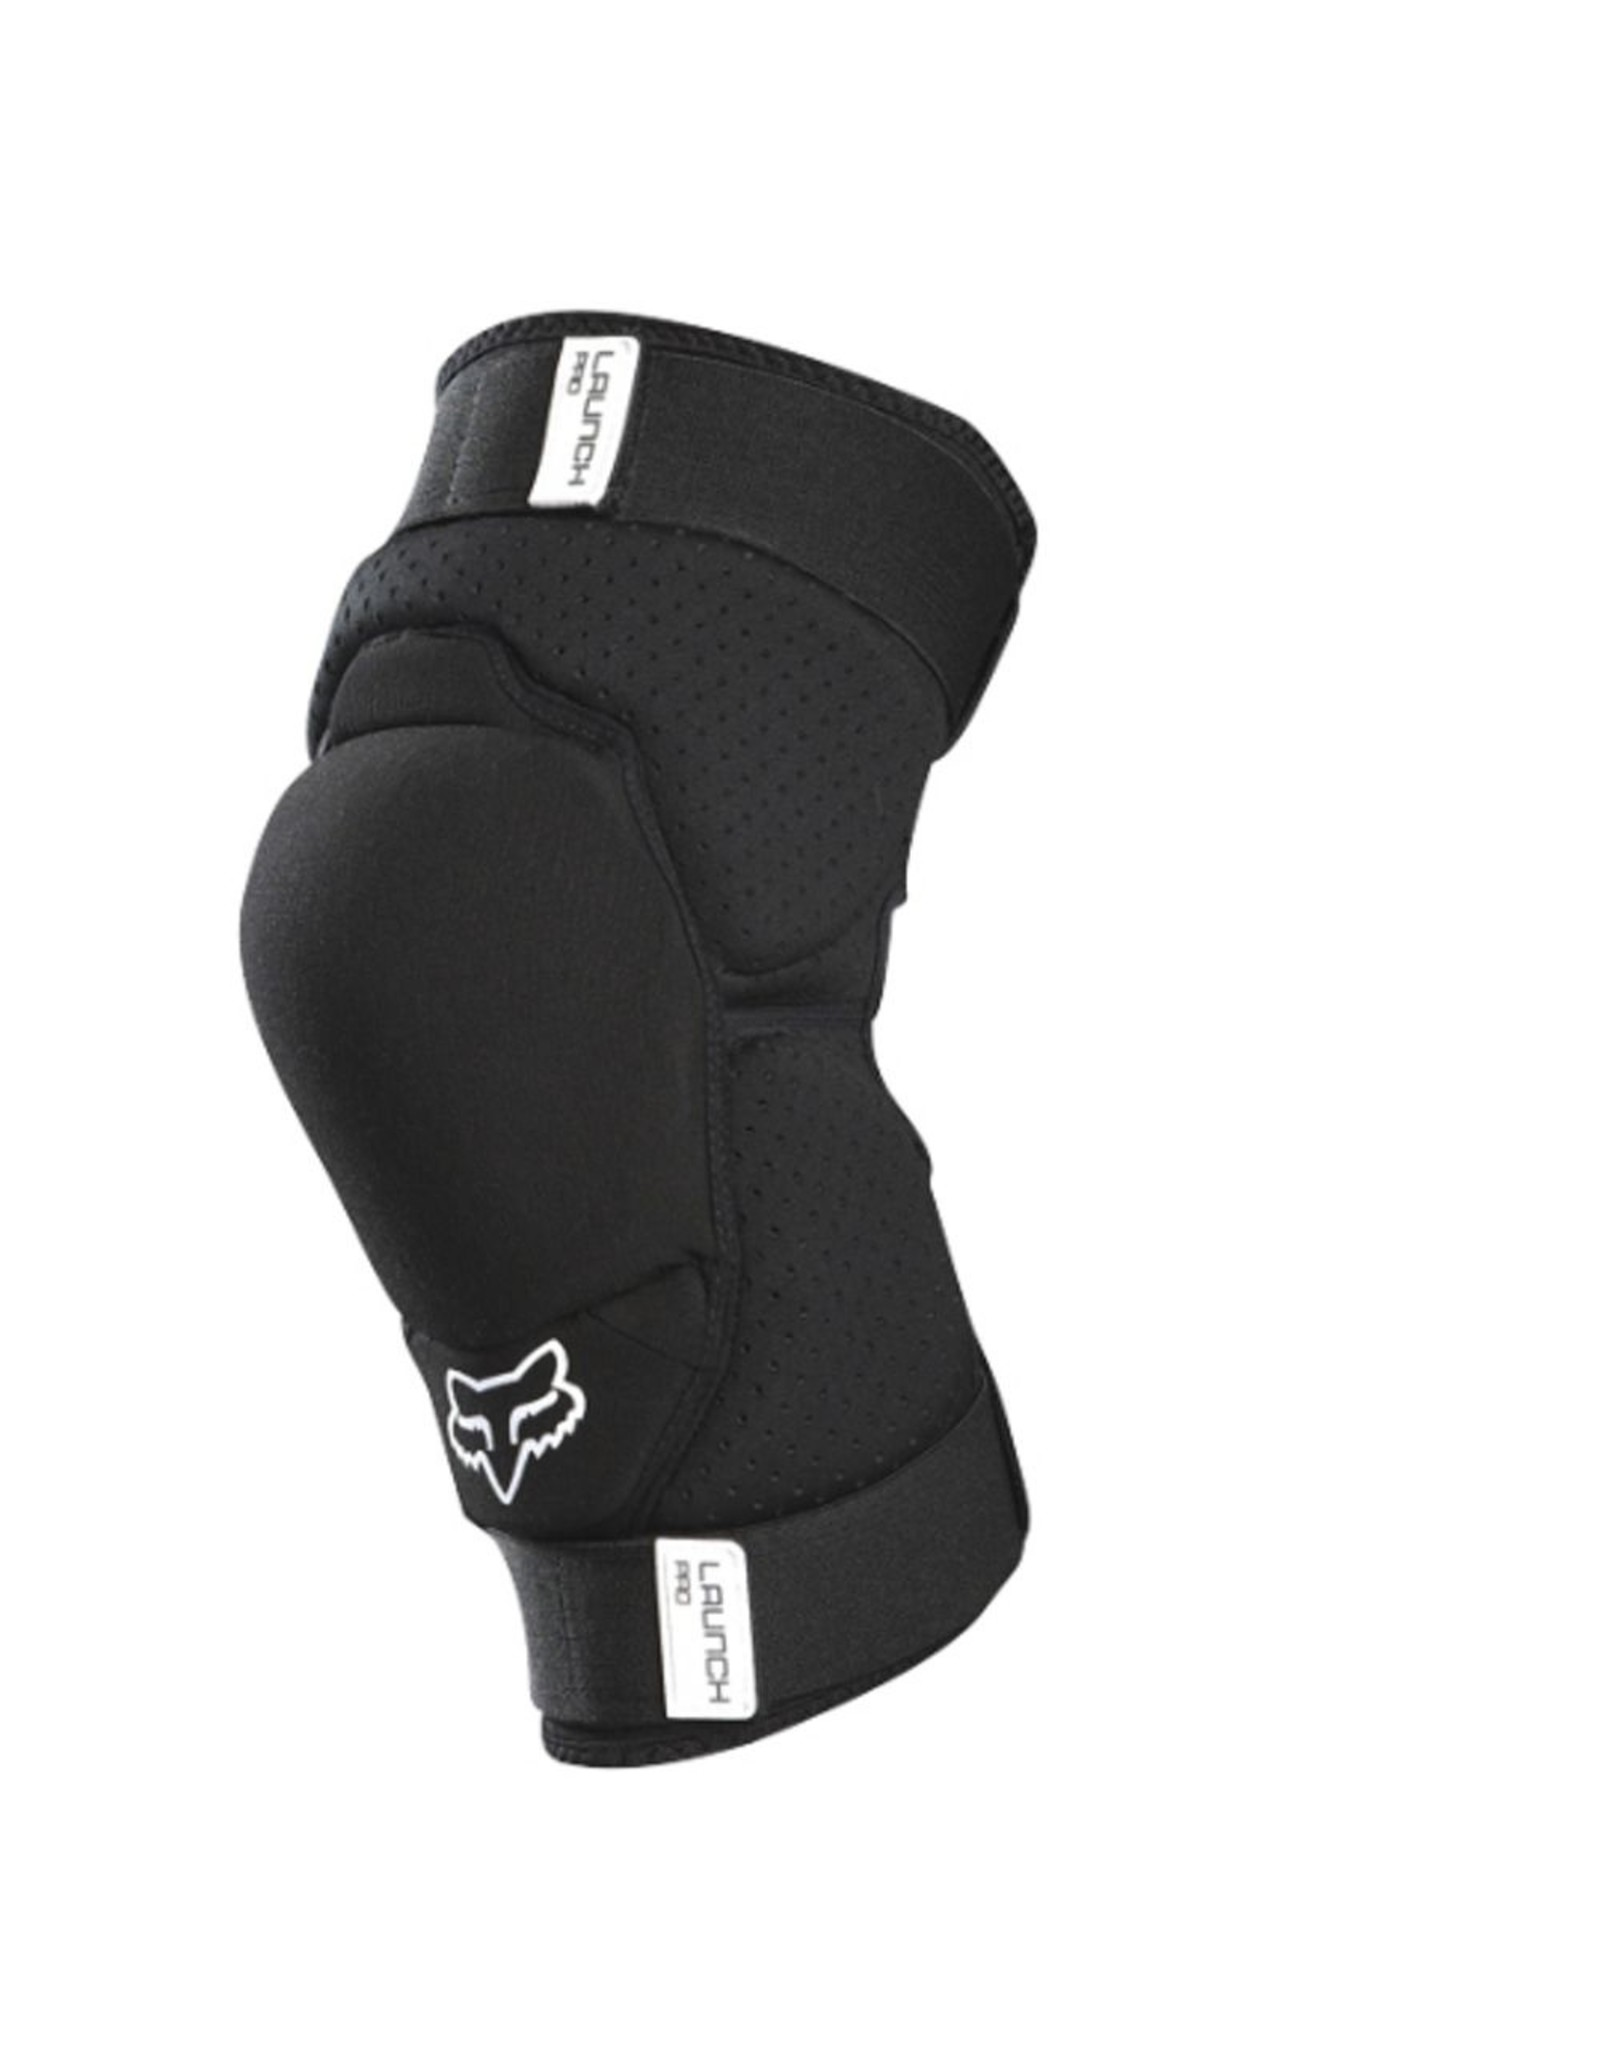 FOX HEAD CLOTHING YOUTH LAUNCH PRO KNEE GUARD BLK OS